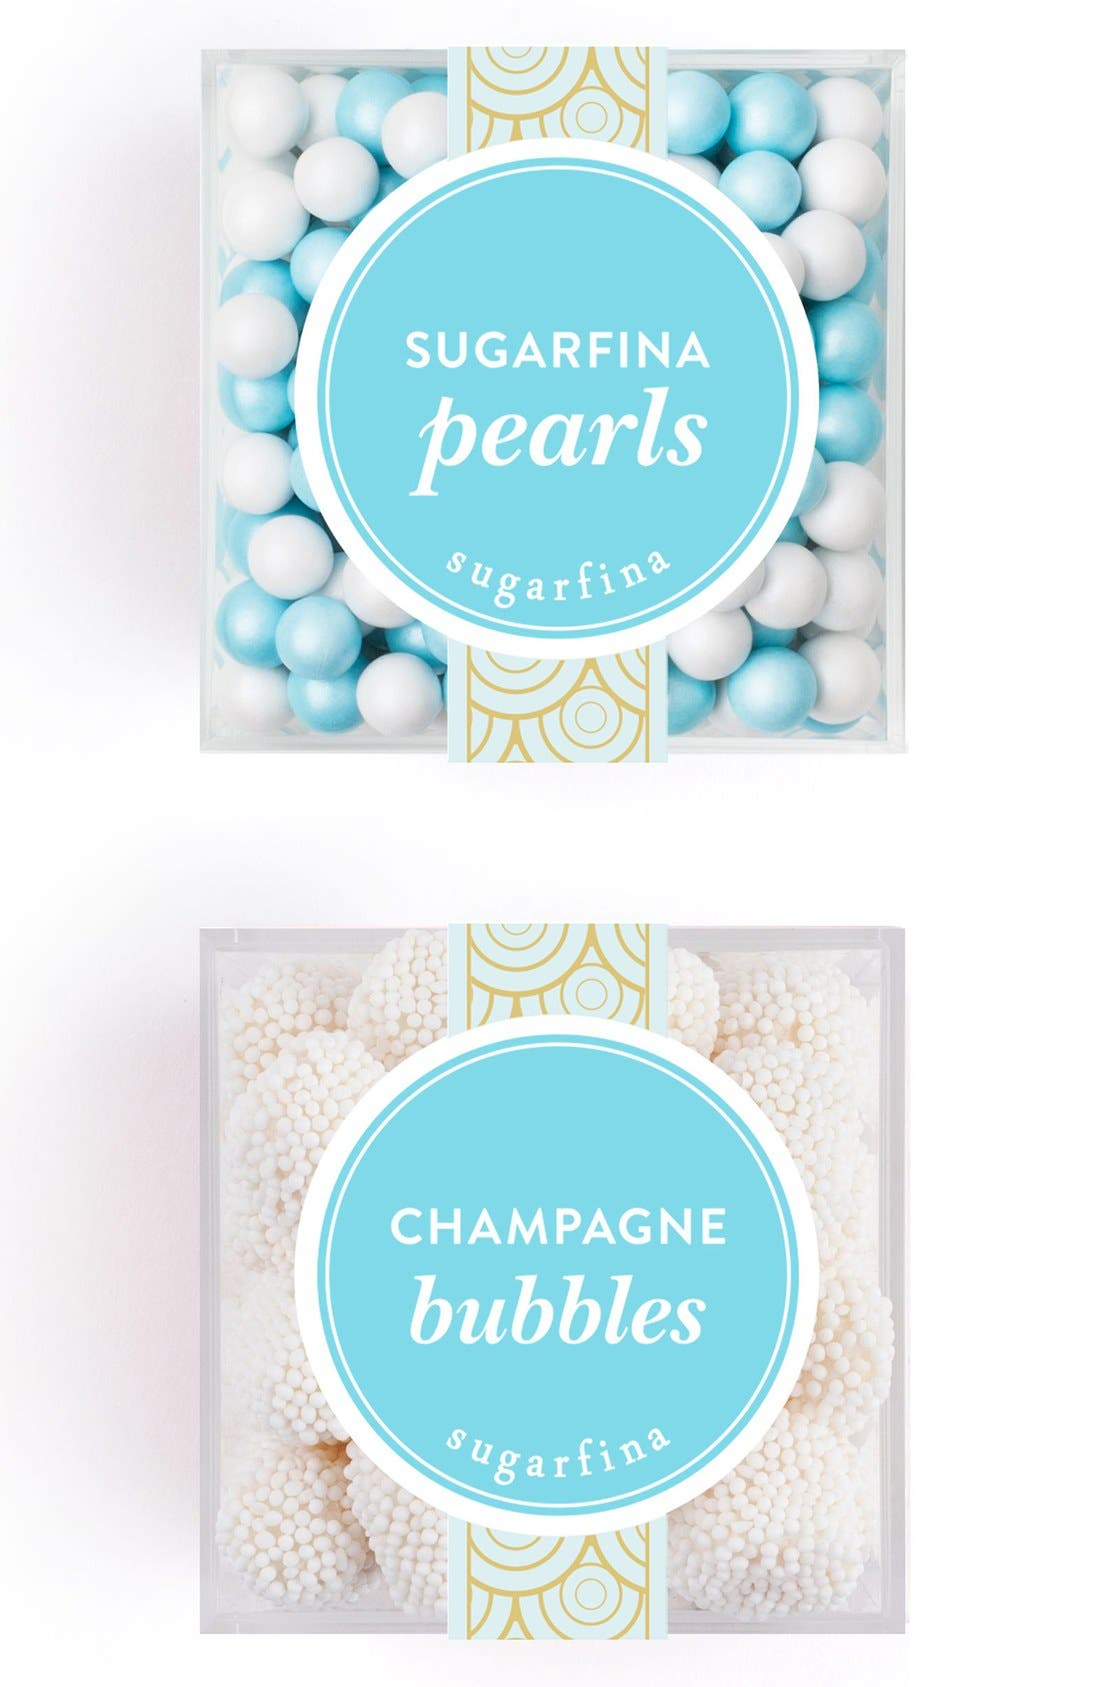 Pearls & Champagne Bubbles Gift Box Set, Main, color, BLUE